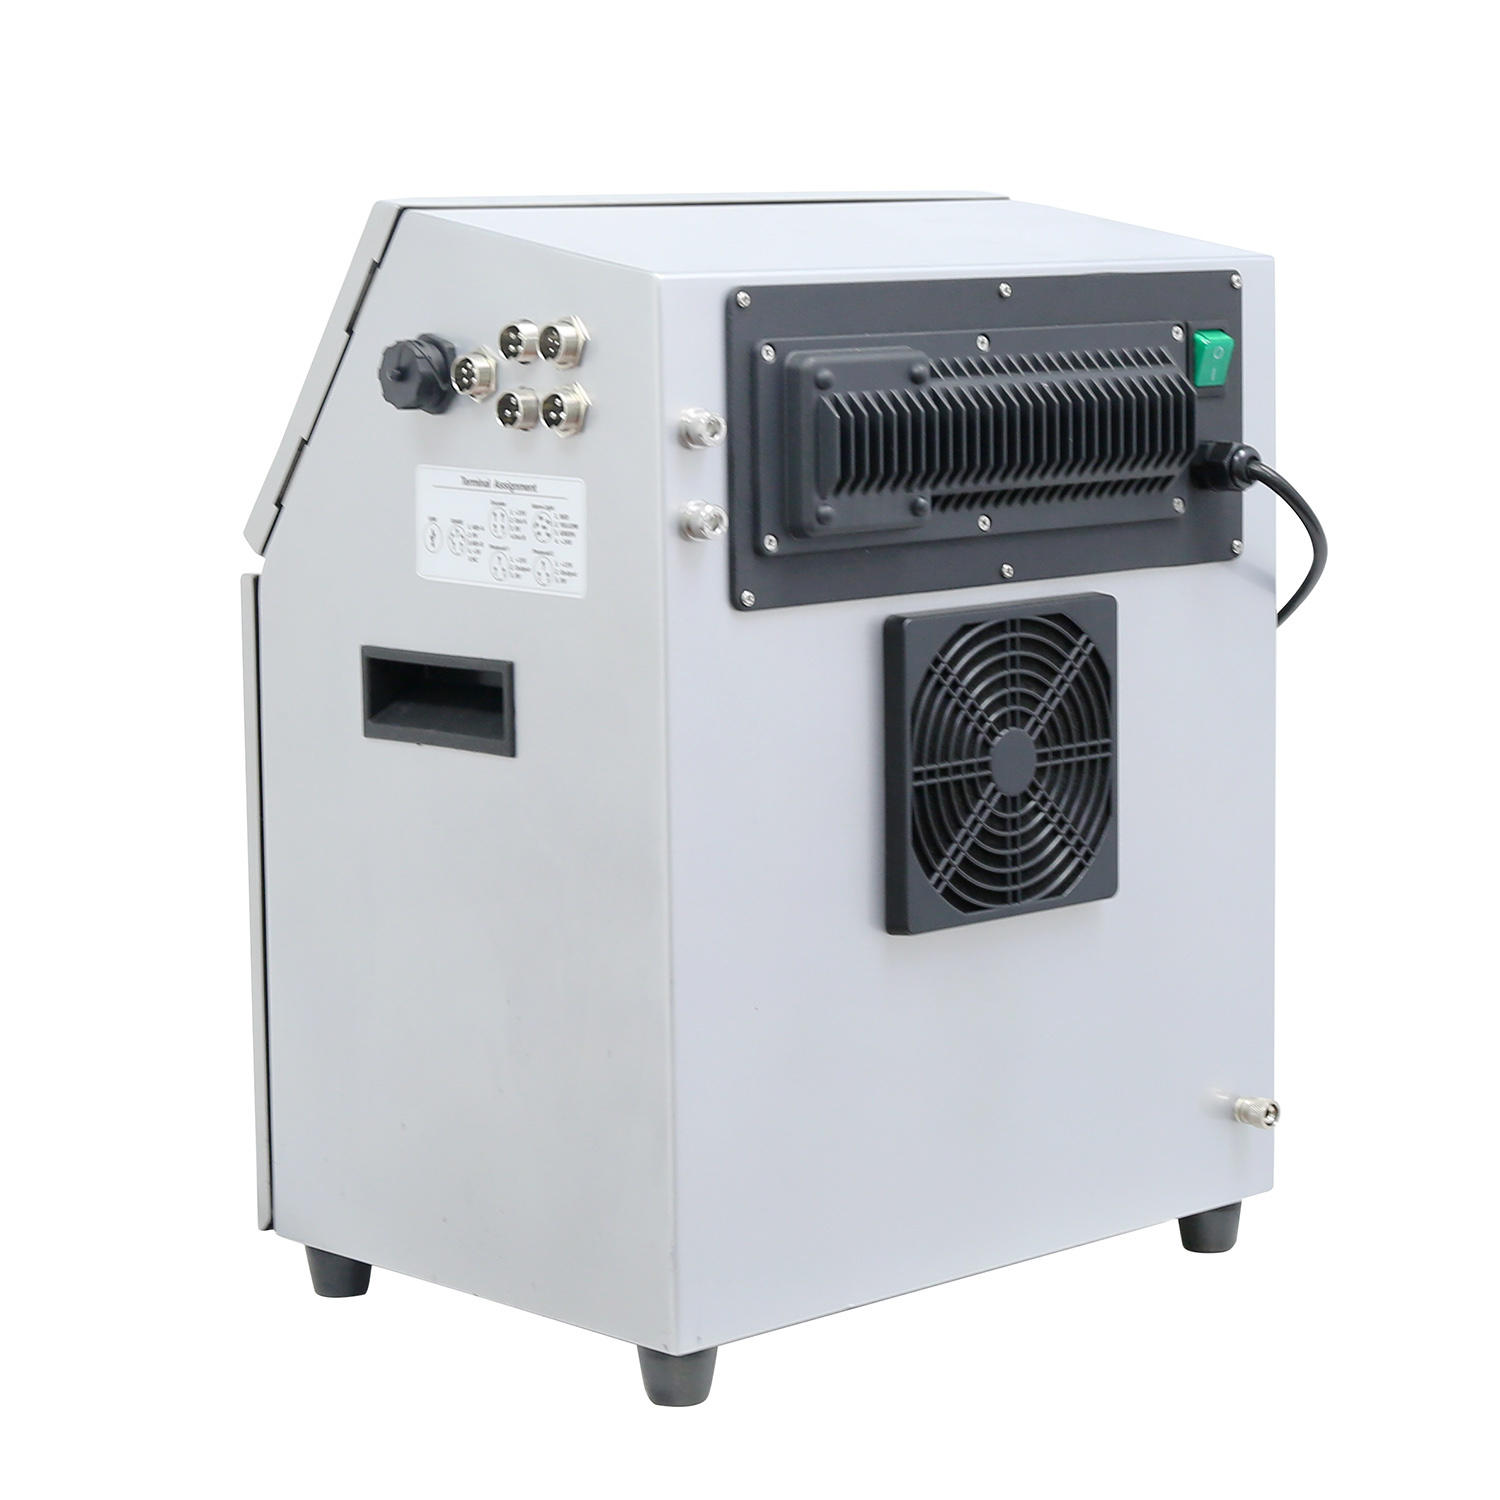 Lead Tech Lt800 High Speed Inkjet Code Printer